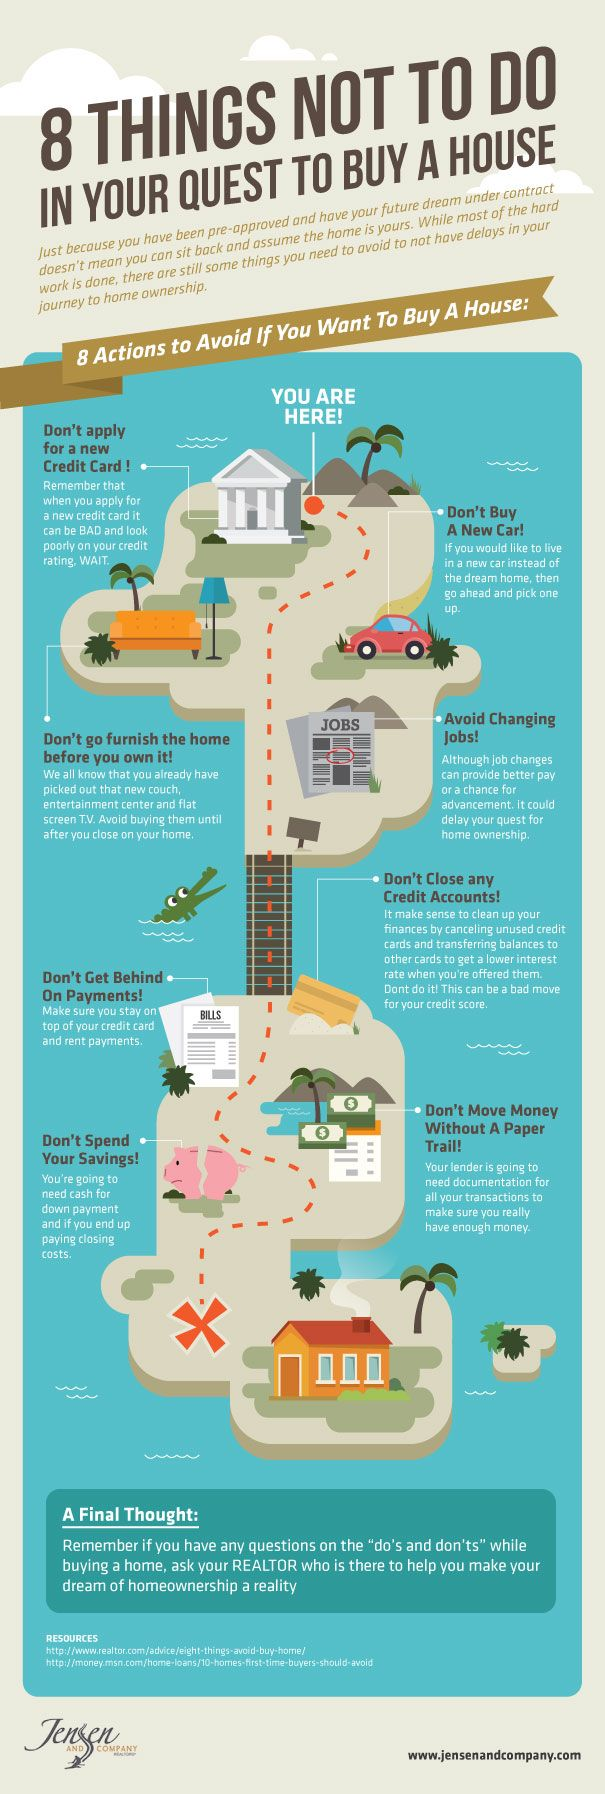 Great tips on what NOT to do when in the process of buying a Home. #realestate #homebuying